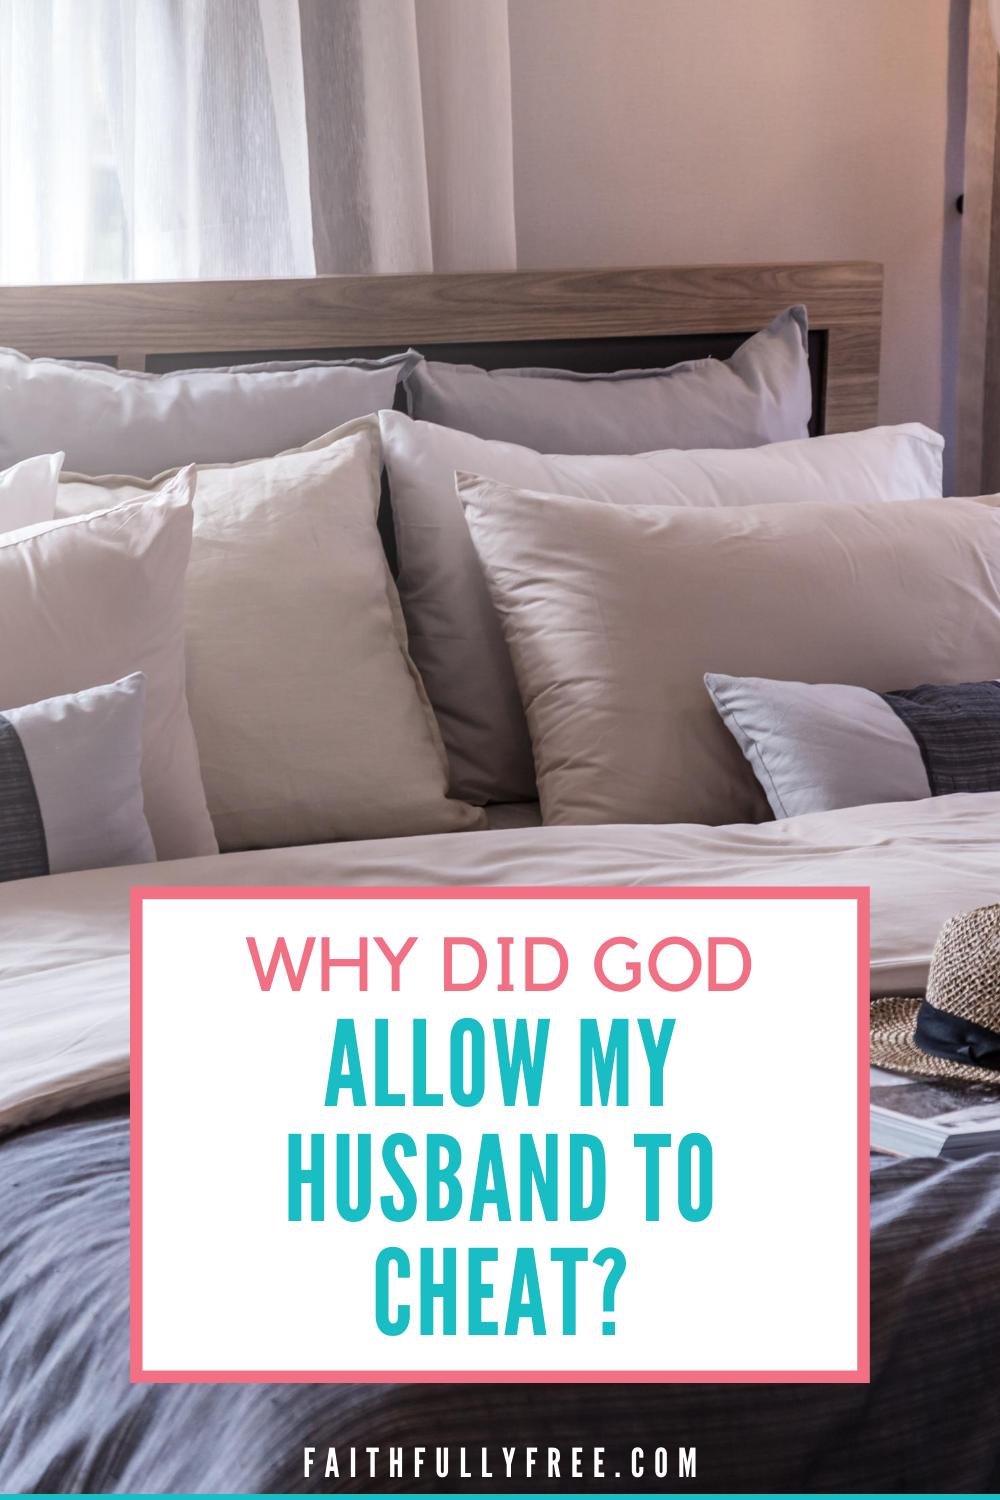 Why Did God Allow My Husband To Cheat? in 2020 | Cheating